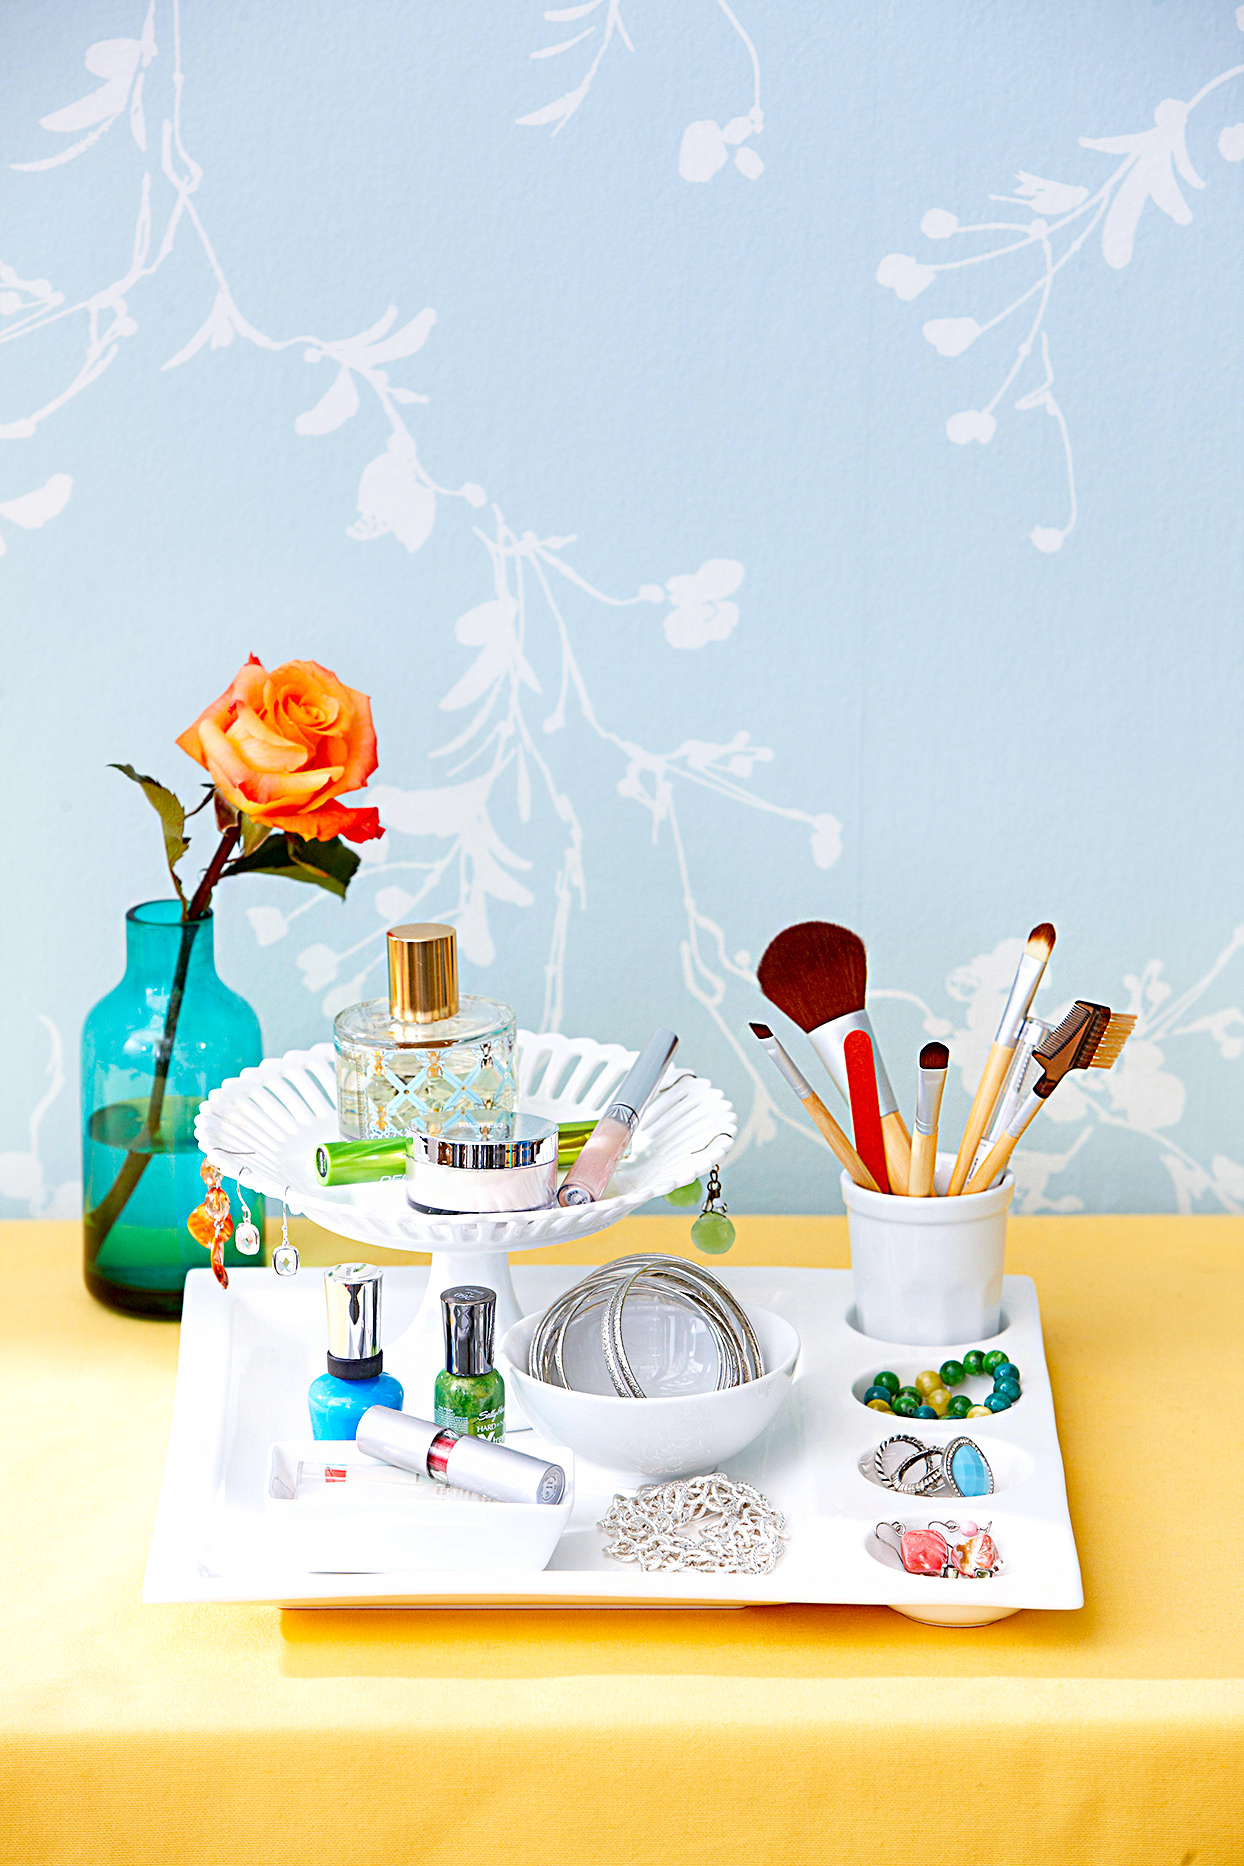 White tray with toiletry items